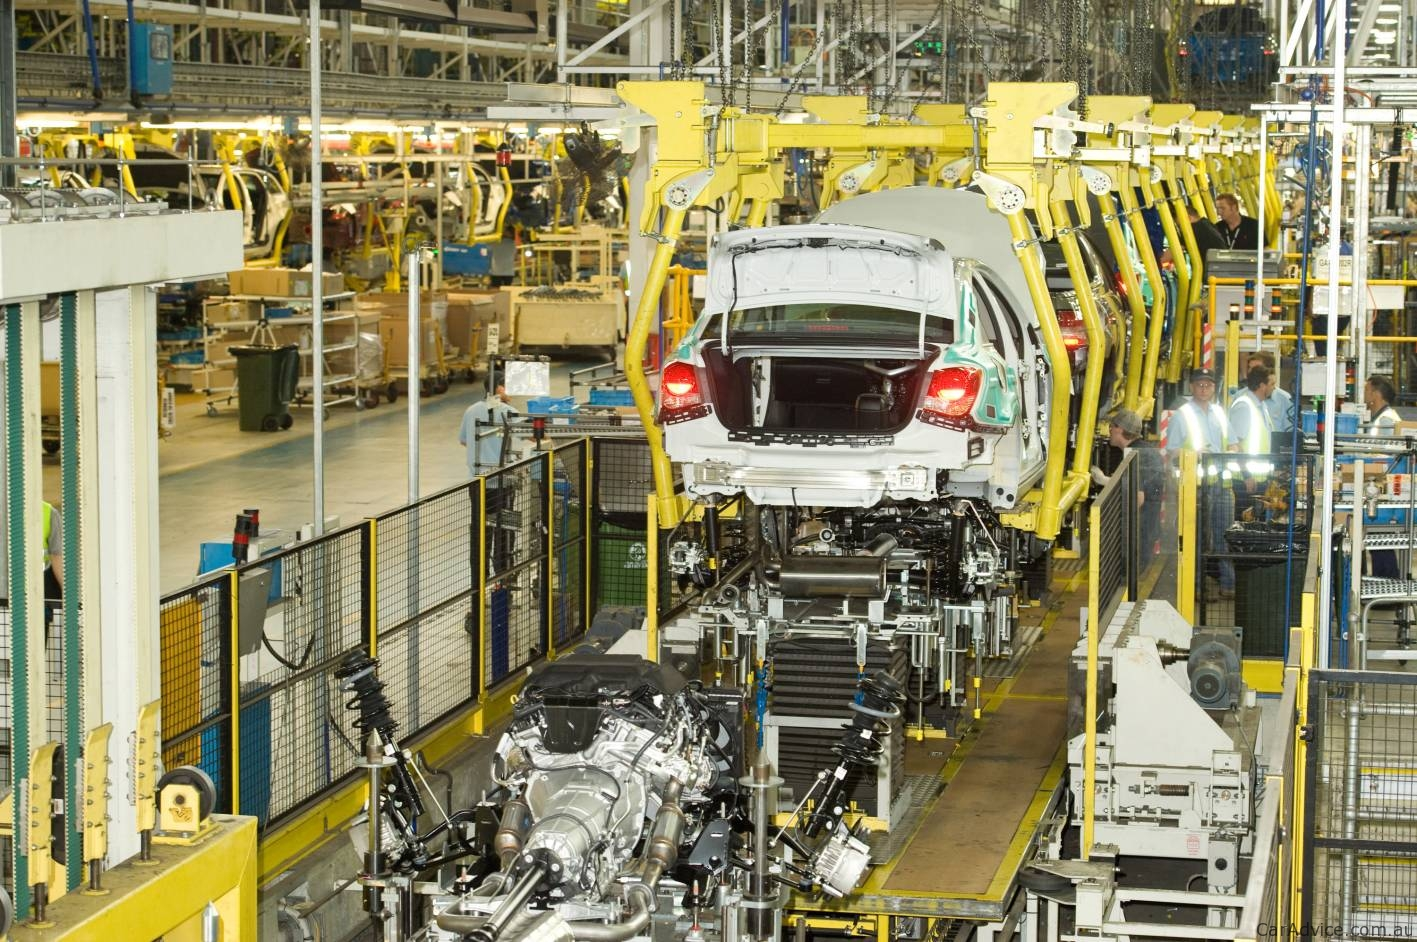 2011 Holden Cruze Series Ii Production A Milestone For The